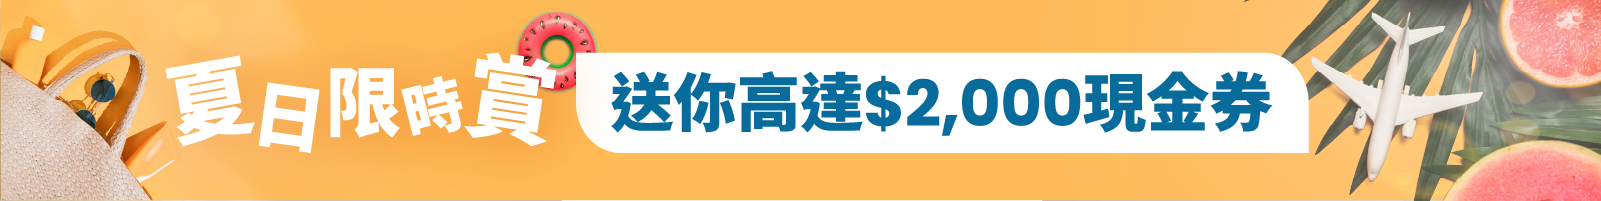 Citi-Cash-Back-HK$2,000Coupon